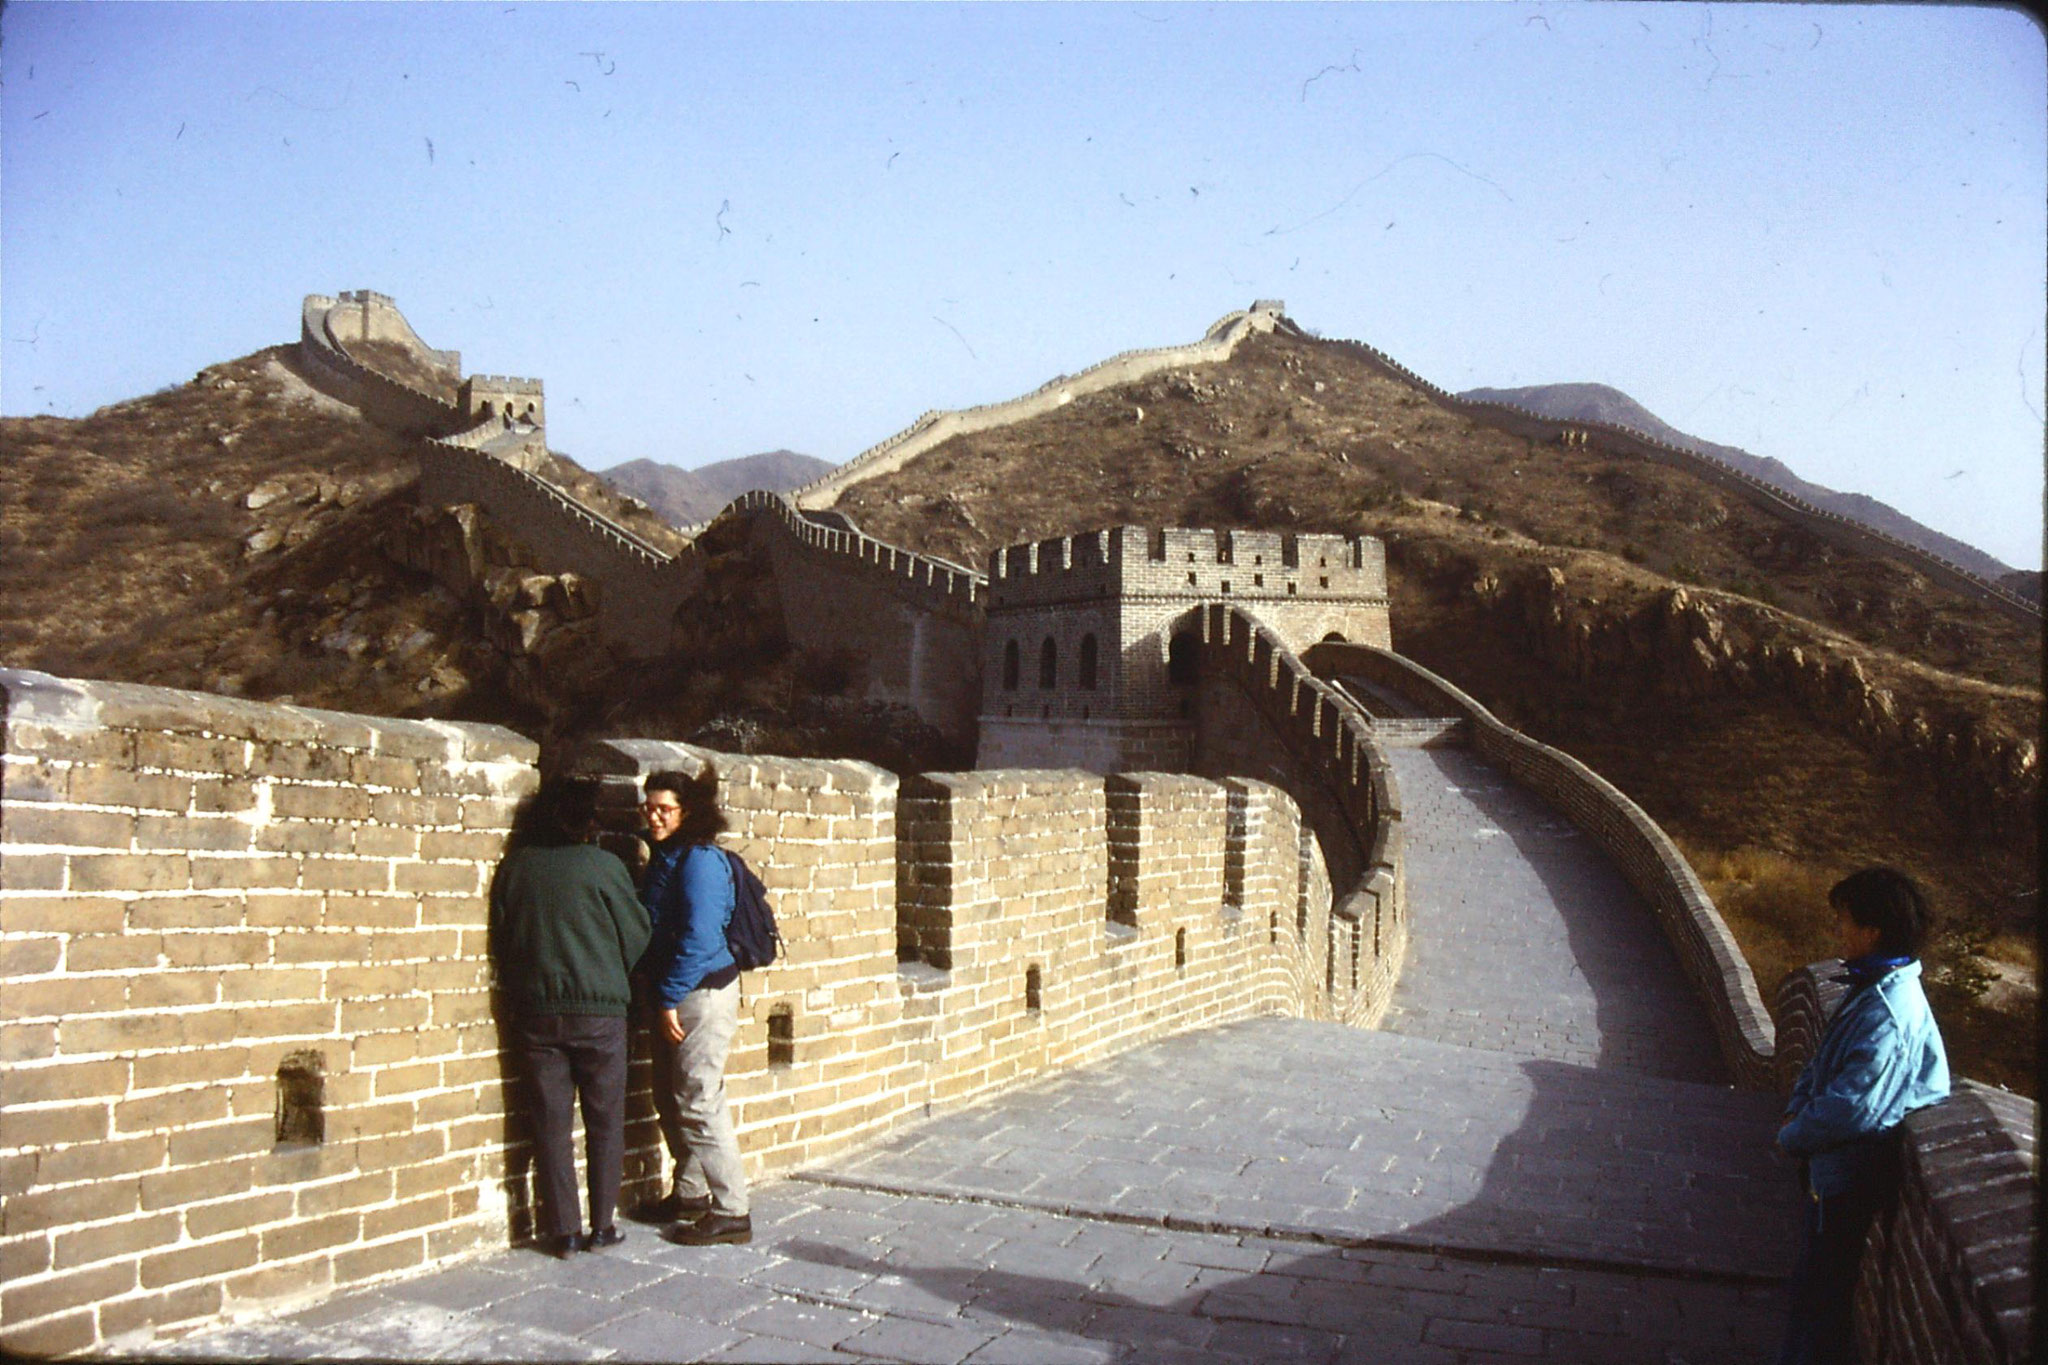 12/11/1988: 3: Great Wall at Badaling